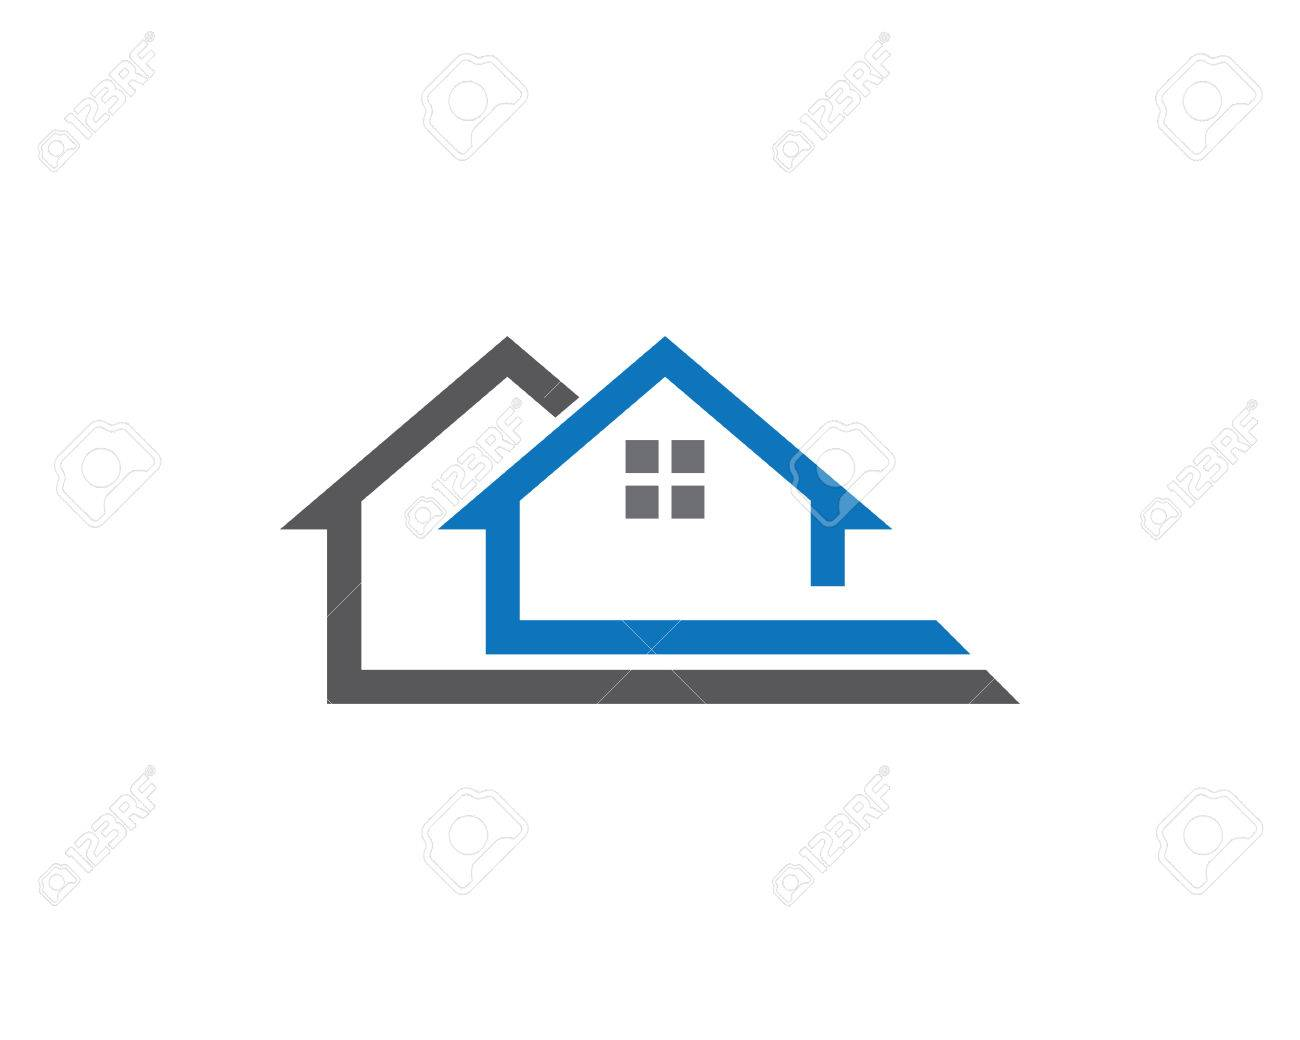 Home And Building Business Property Logo Template Royalty Free ...